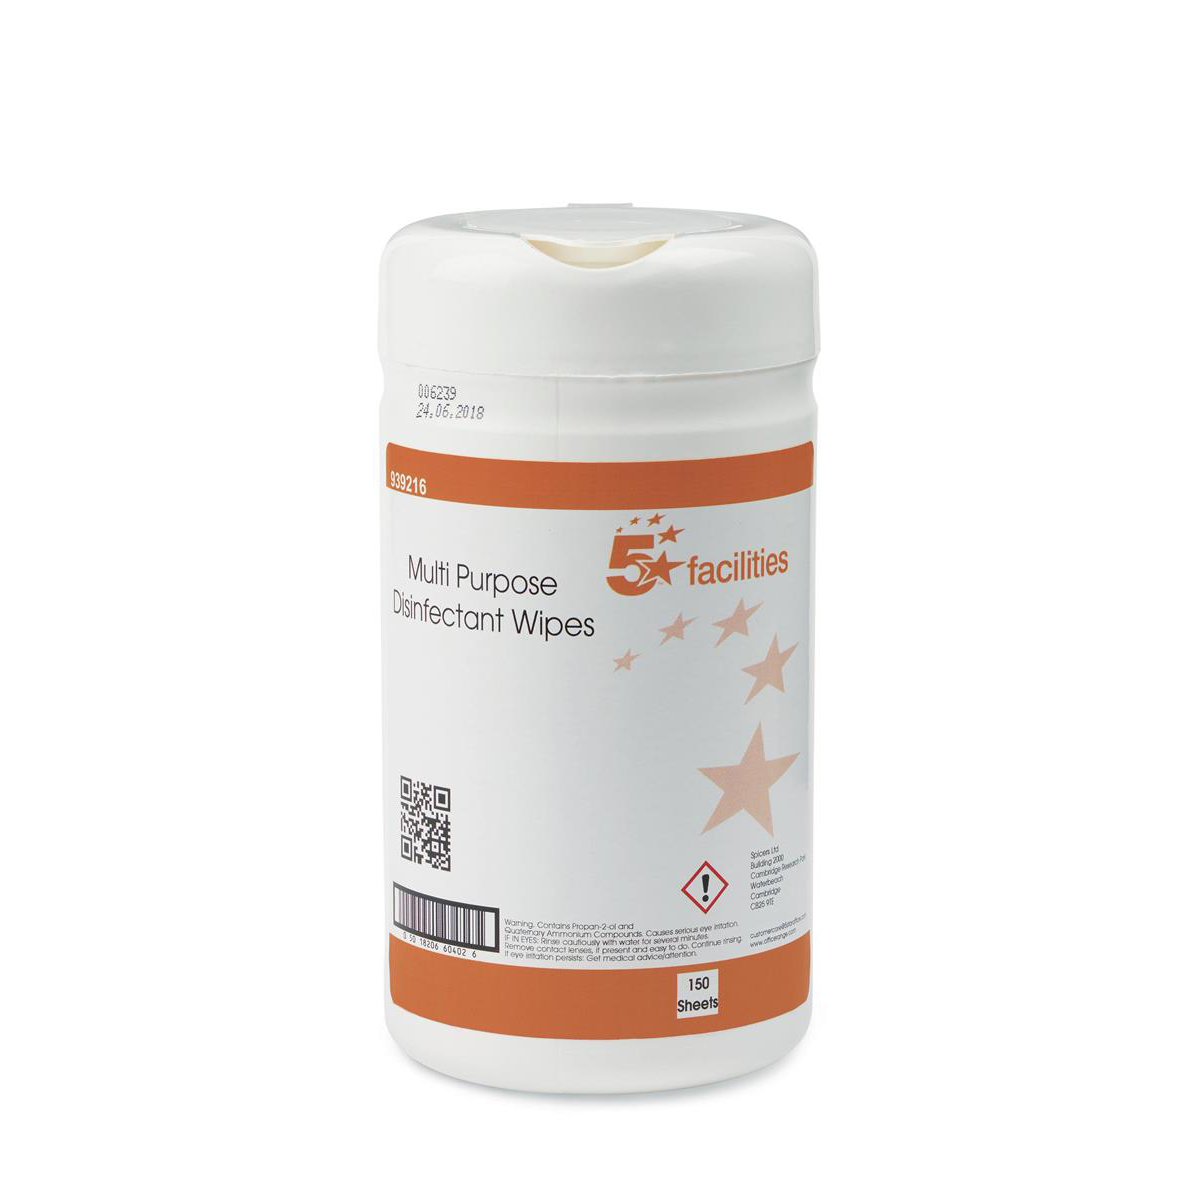 5 Star Facilities Multipurpose Disinfectant Wipes Anti-bacterial 23gsm 13x13cm Tub 150 Sheets